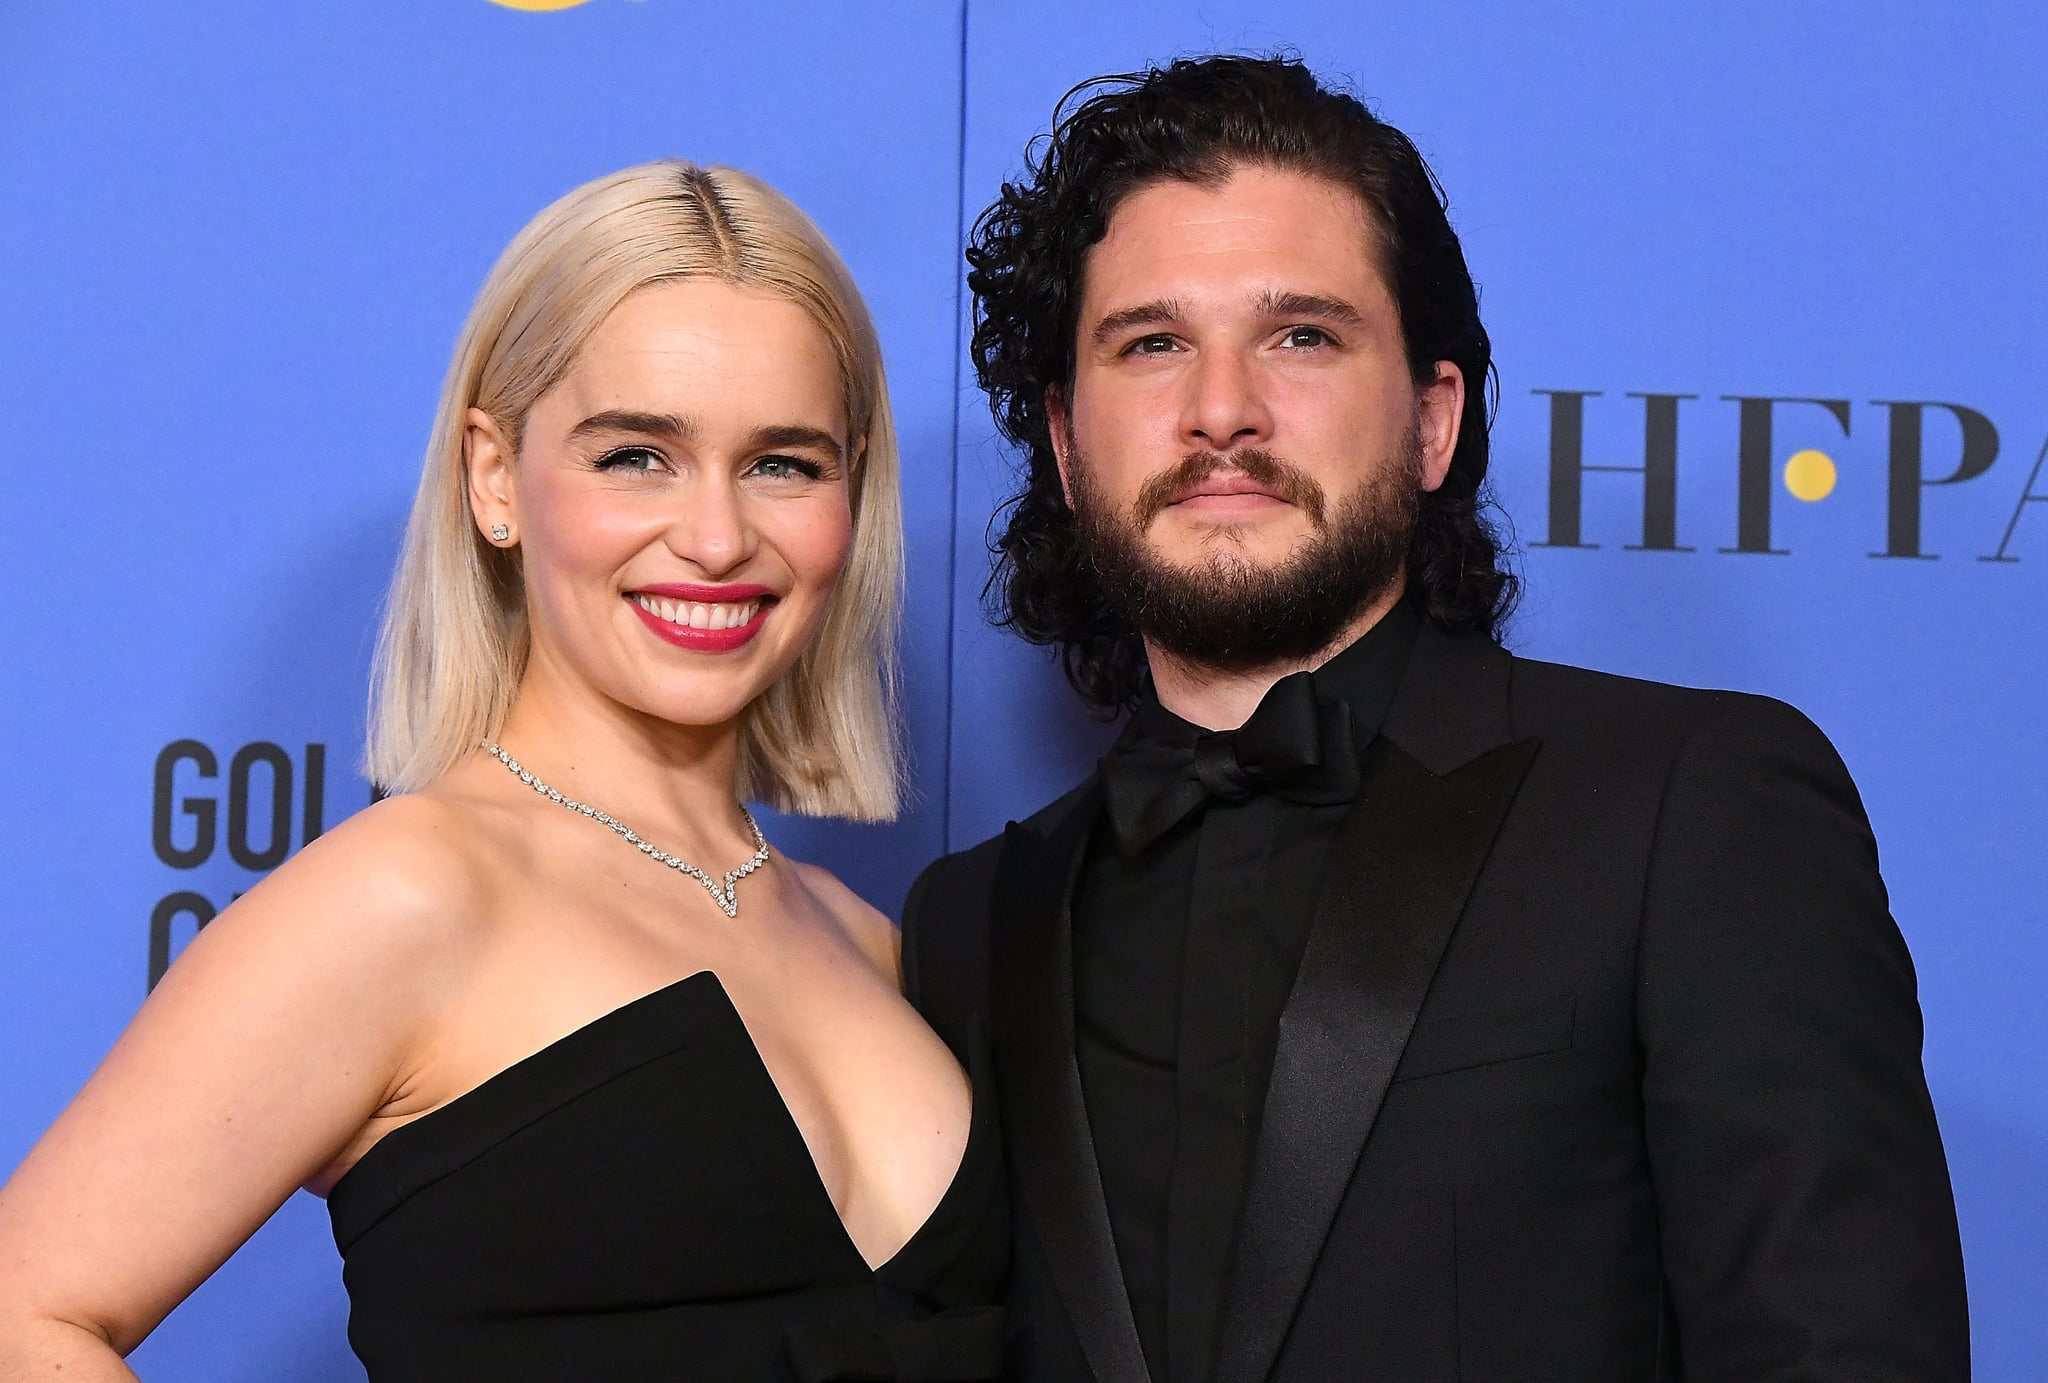 Kit Harington Admits He Really Should Have Seen the Shocking Game of Thrones Ending Coming